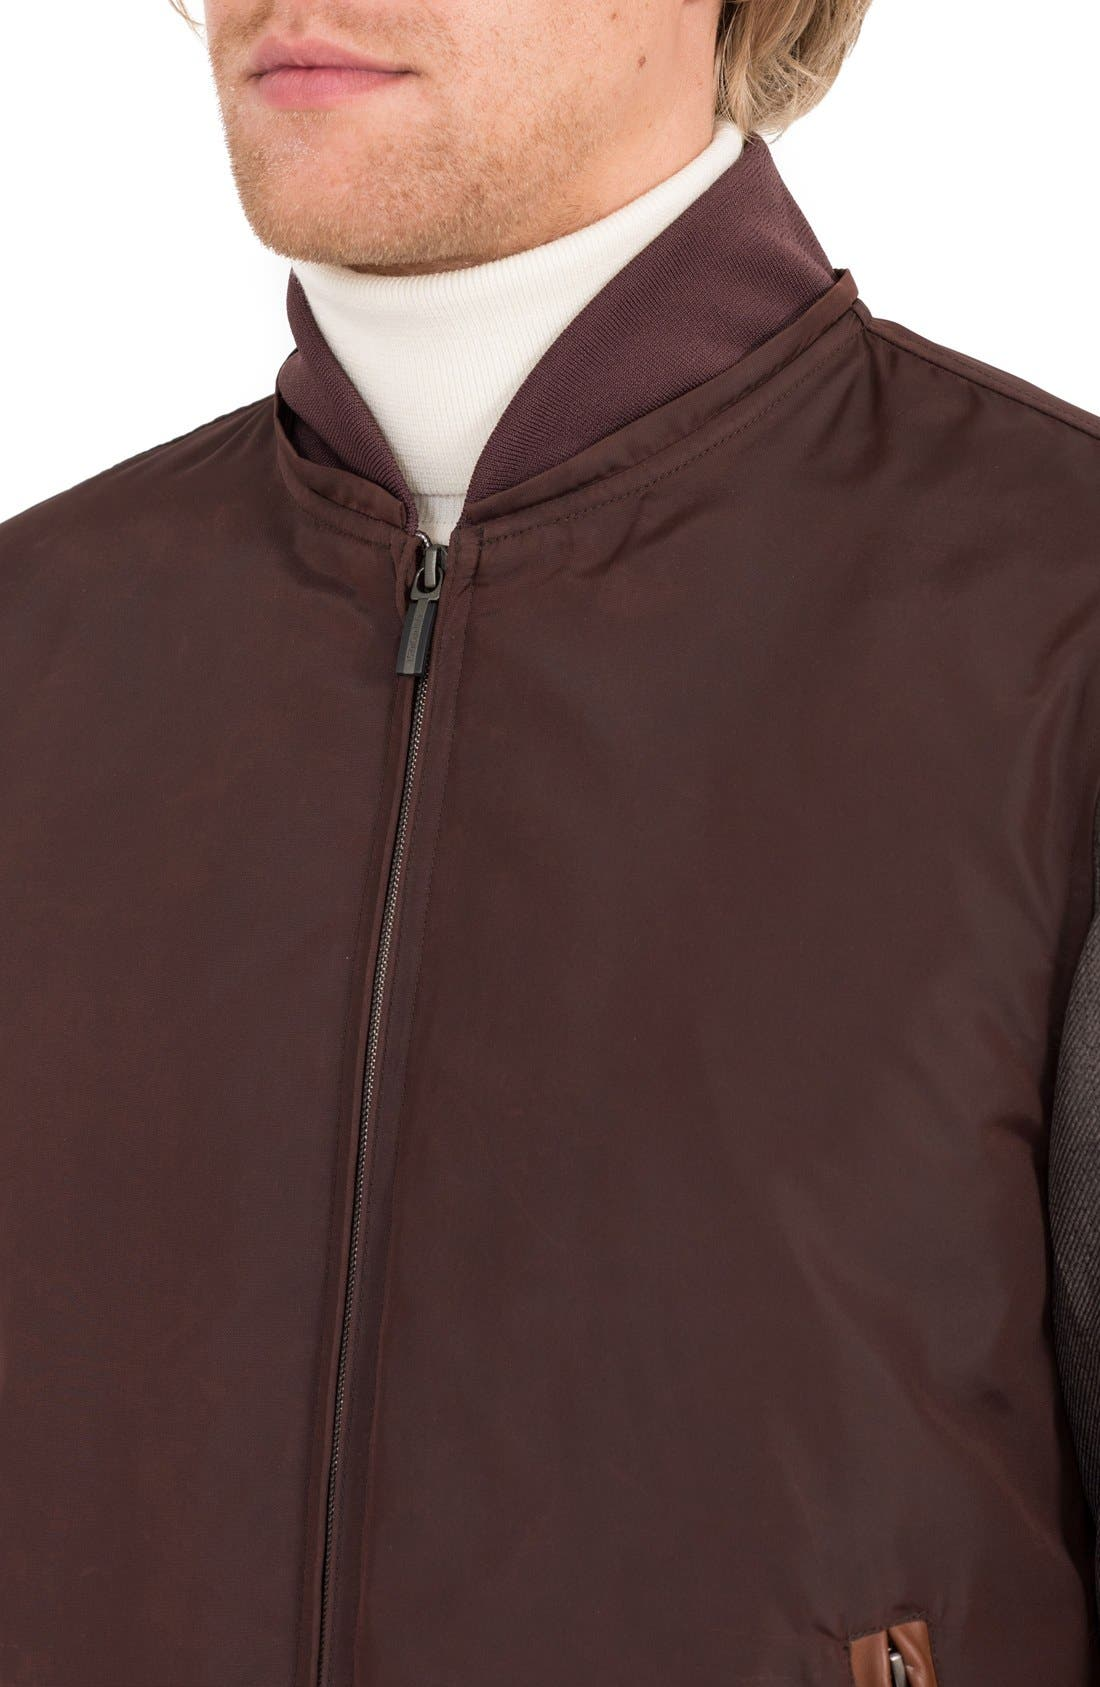 Waxed Nylon Jacket with Faux Shearling Collar,                             Alternate thumbnail 10, color,                             930